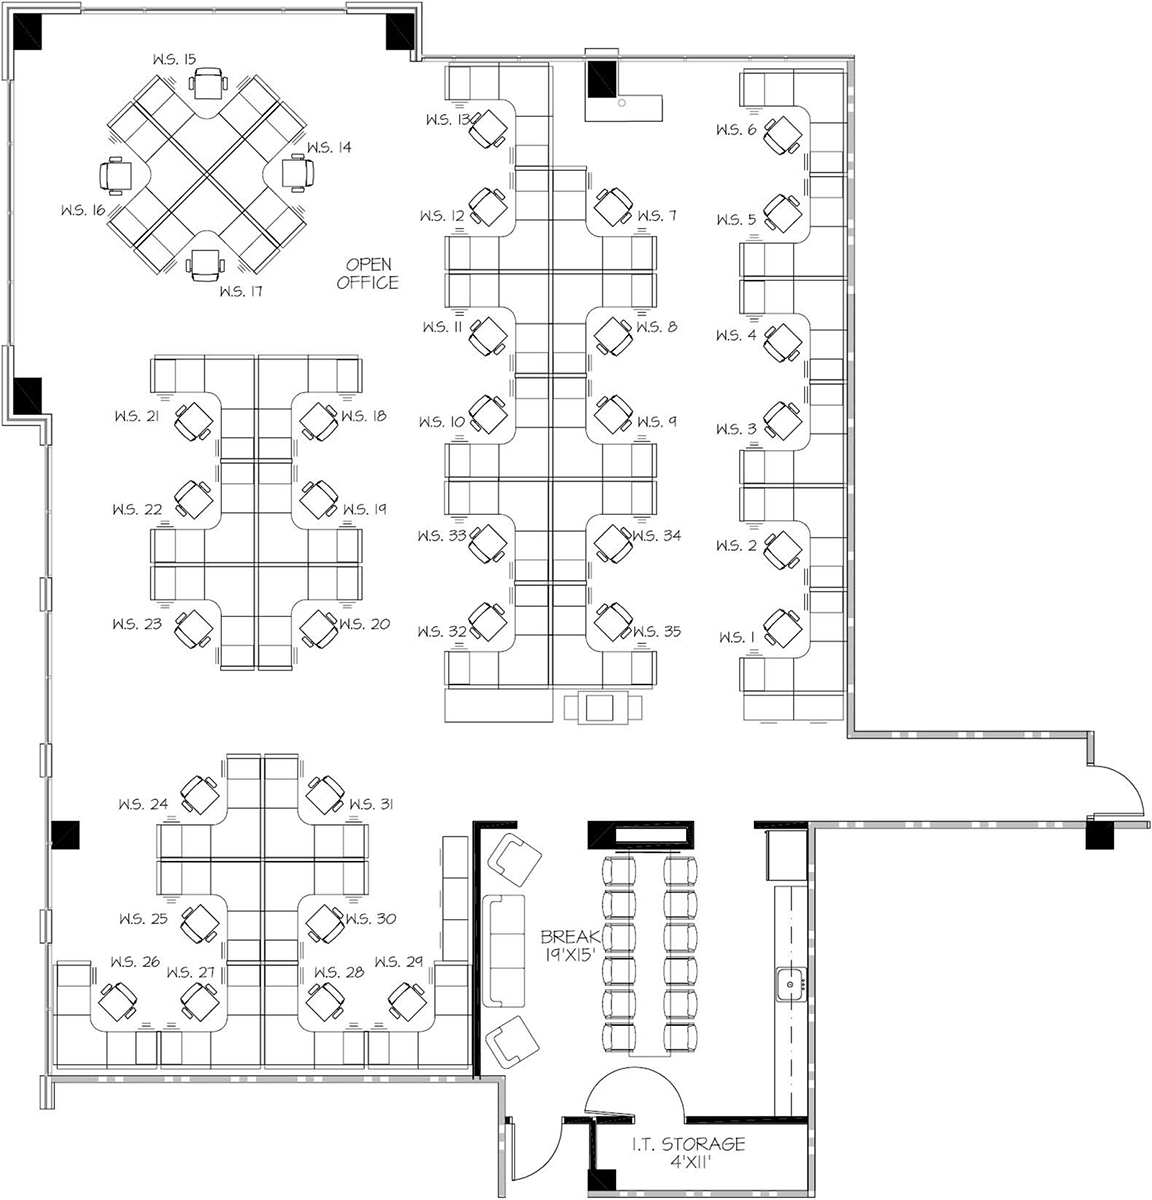 HO1_SL_3818_SF_Floor Plan.jpg